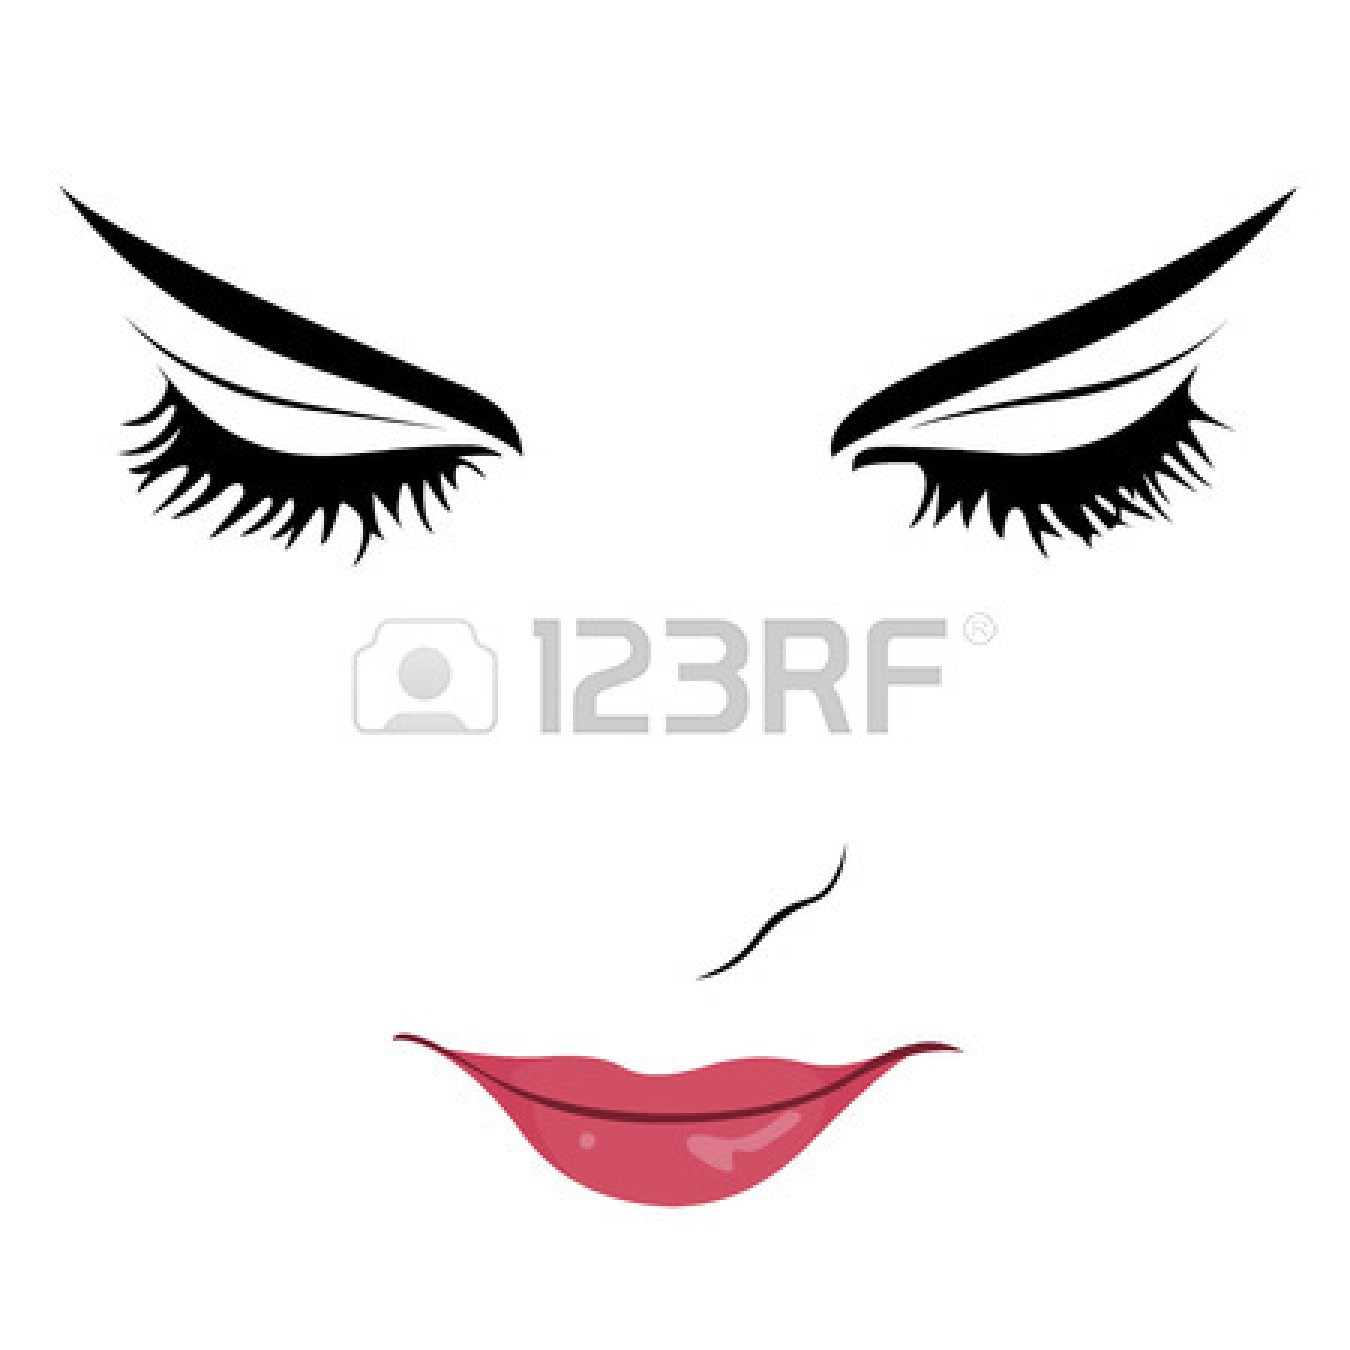 Eyelash clipart Clipart Panda dissatisfaction%20clipart Clipart Images